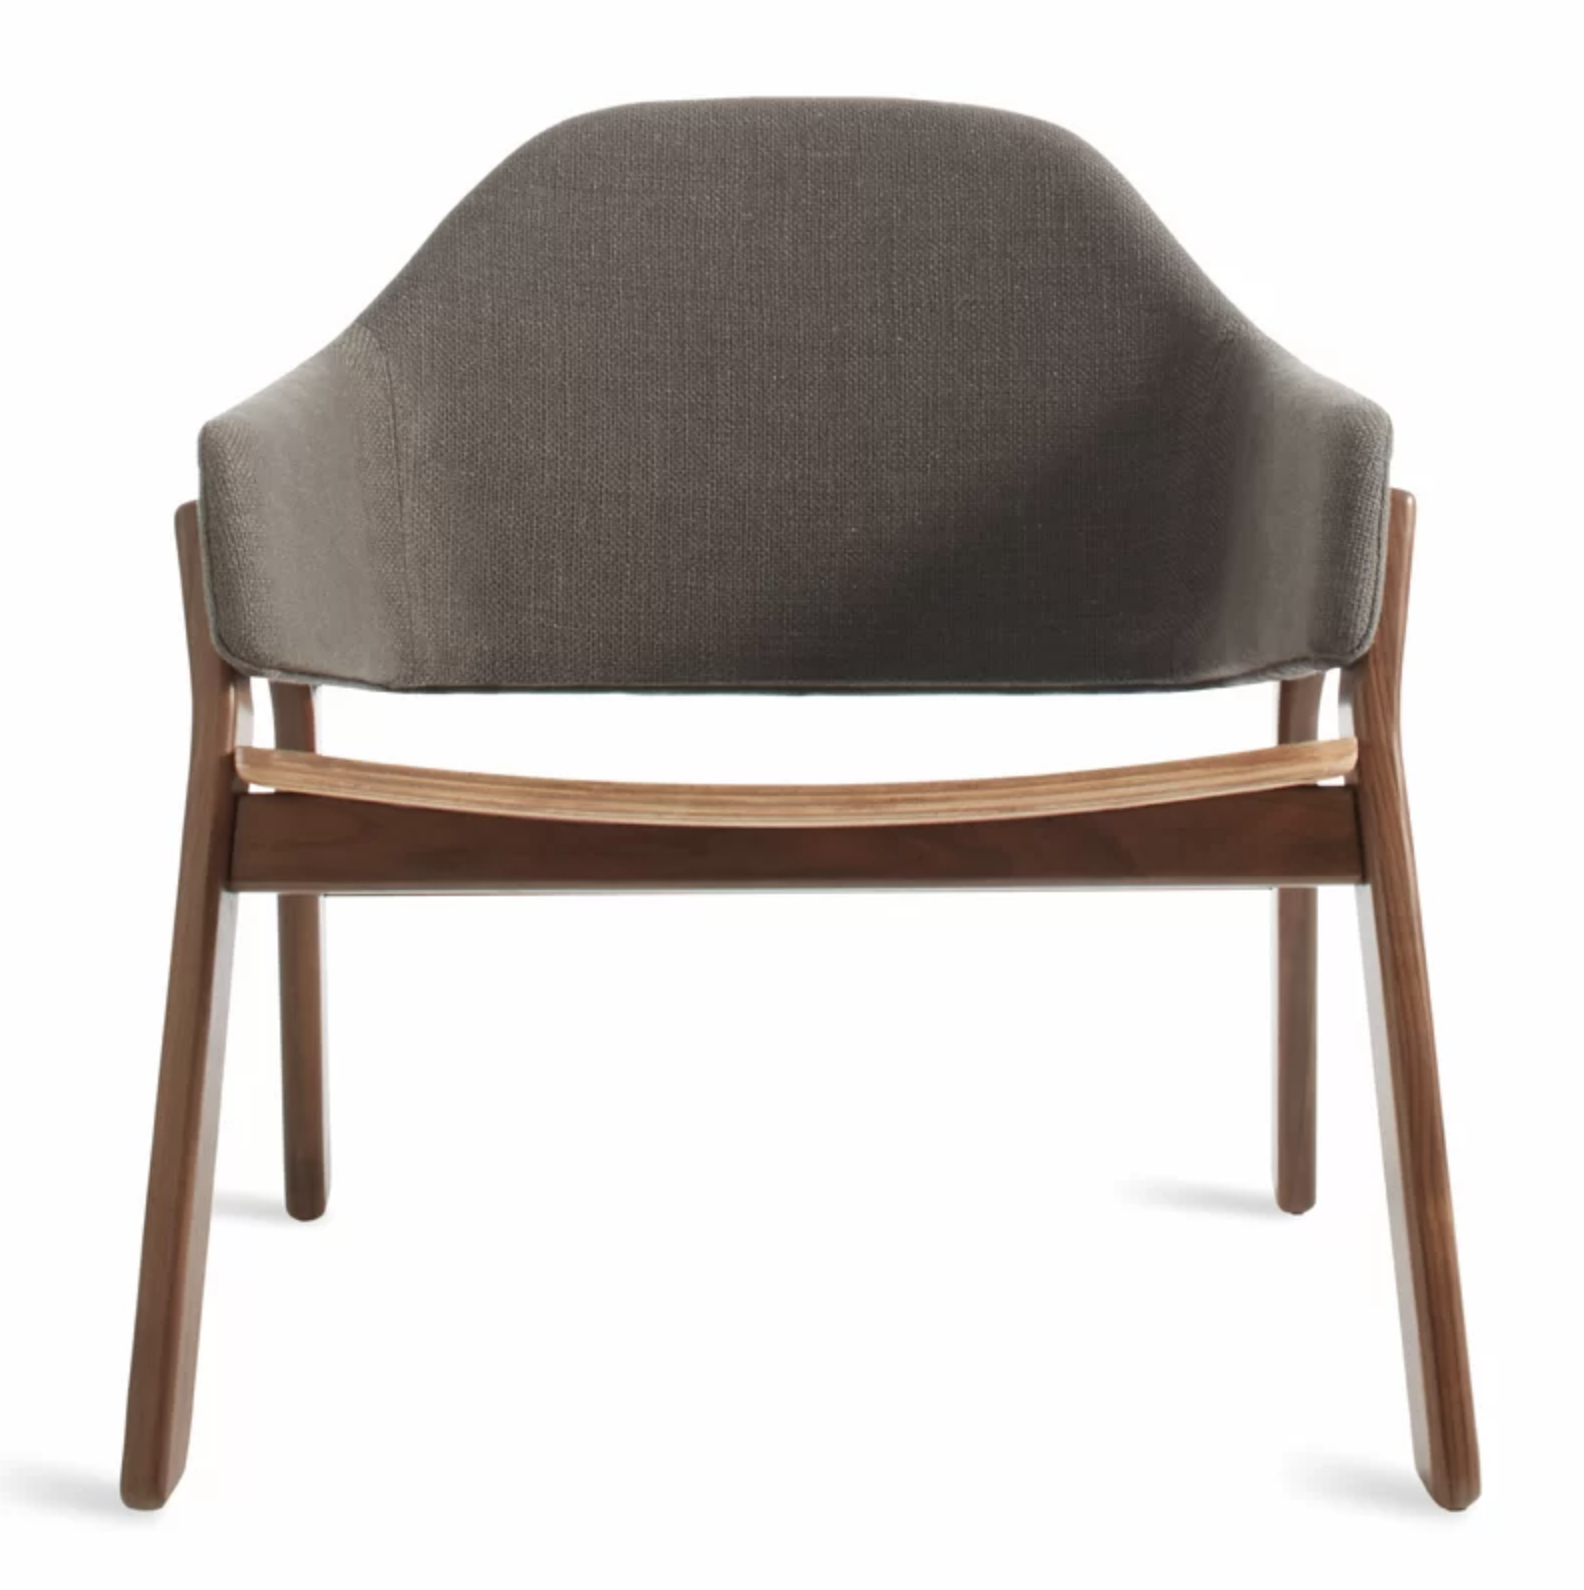 Mid Mod Gray and Teak Modern Gray Accent Chair Accent Chair Roundup | Modern, Industrial, Rustic, Beach, Boho Accent and Arm Chairs | Miranda Schroeder Blog